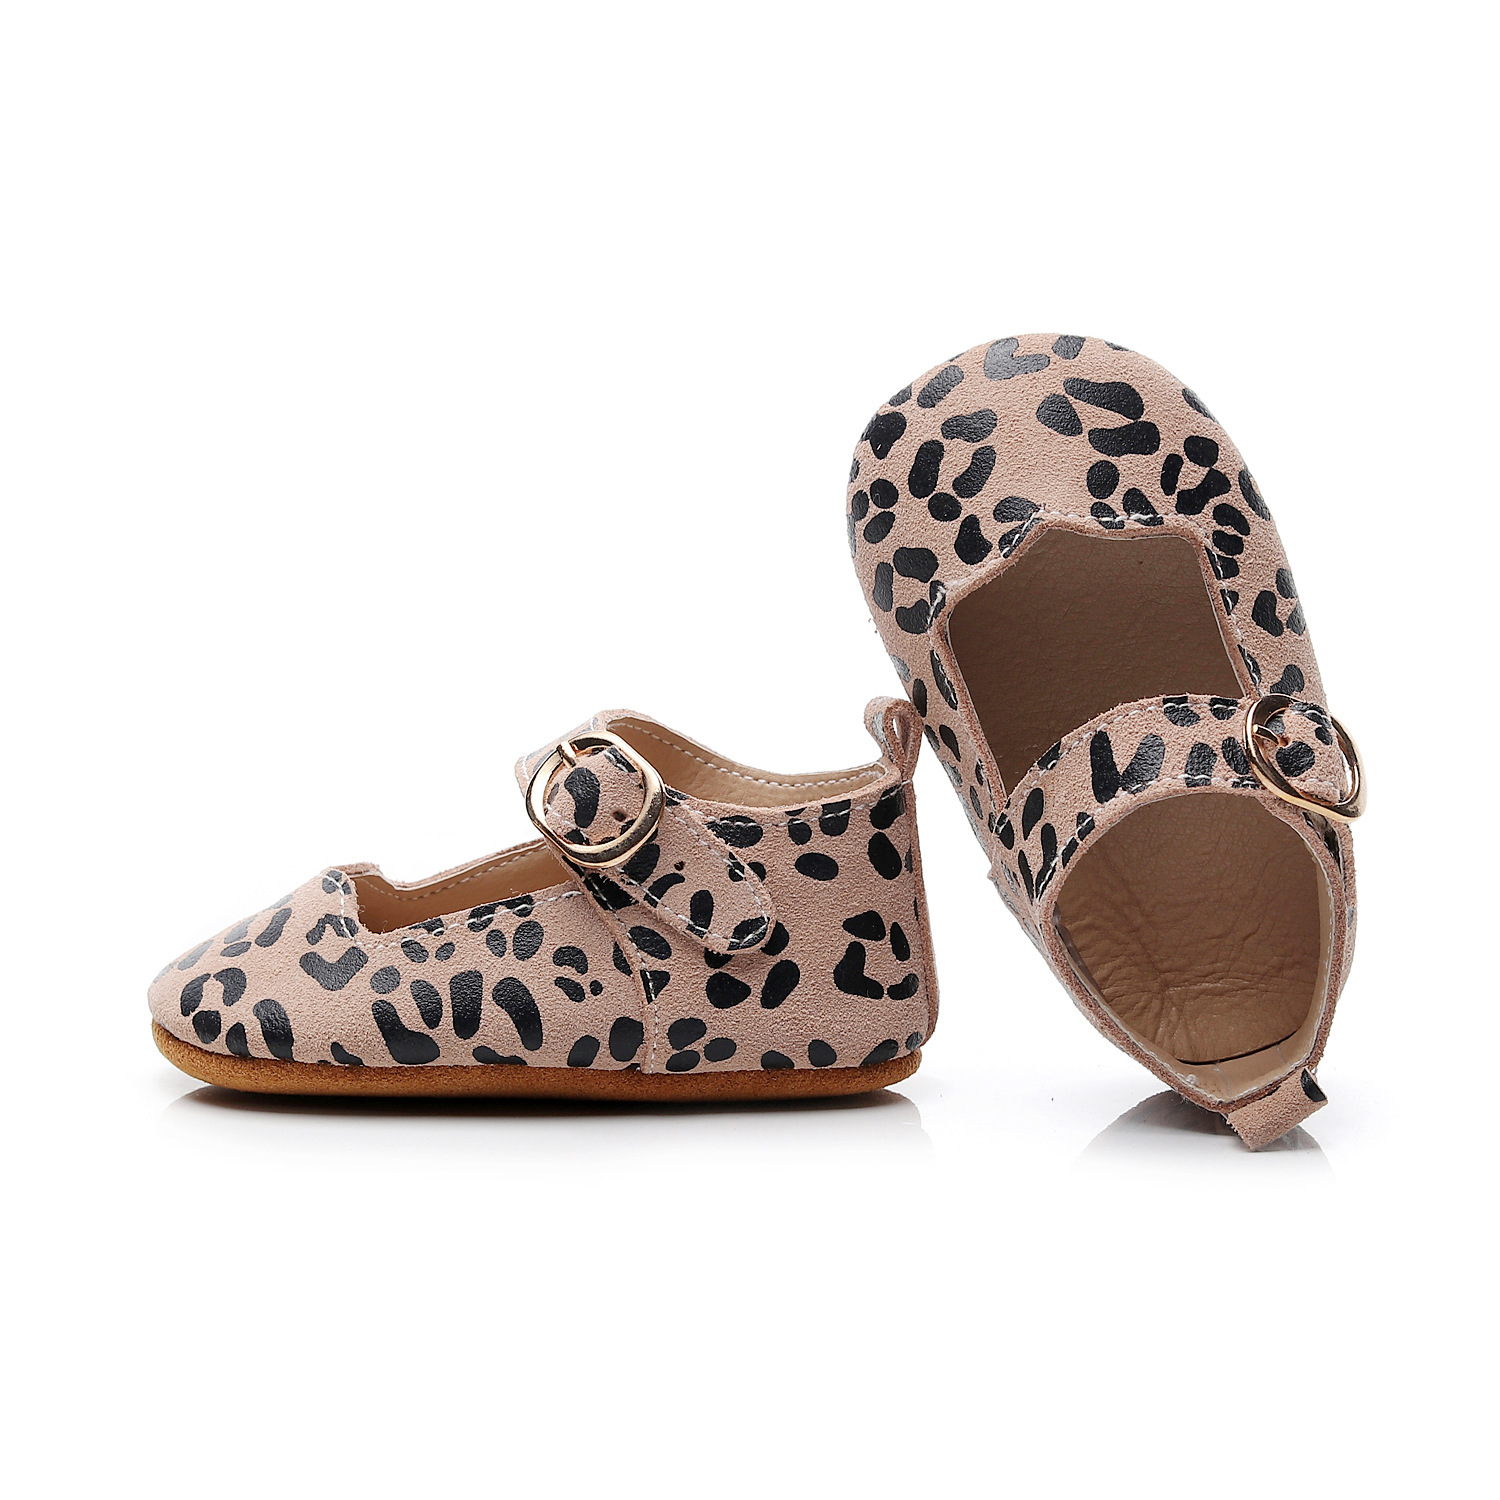 2020 New Designs Genuine Leather Baby Moccasins Girls Shoes Leopard Mary Jane Flats Princess Shallow Toddler First Walkers